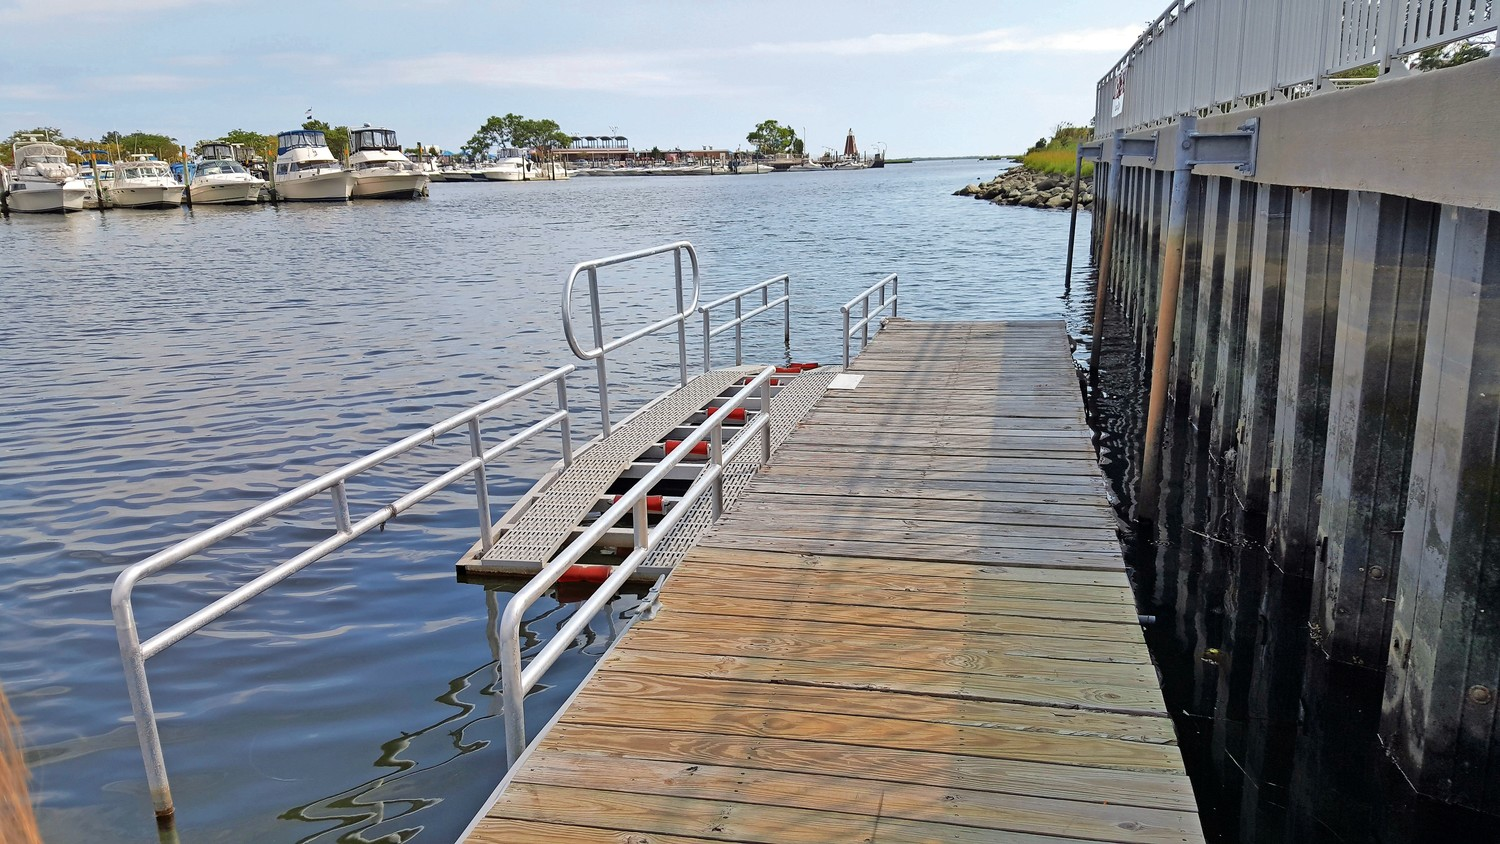 One of the projects that the grants will fund is the installation of a kayak launch in Freeport, similar to this one that was built in Wantagh Park.